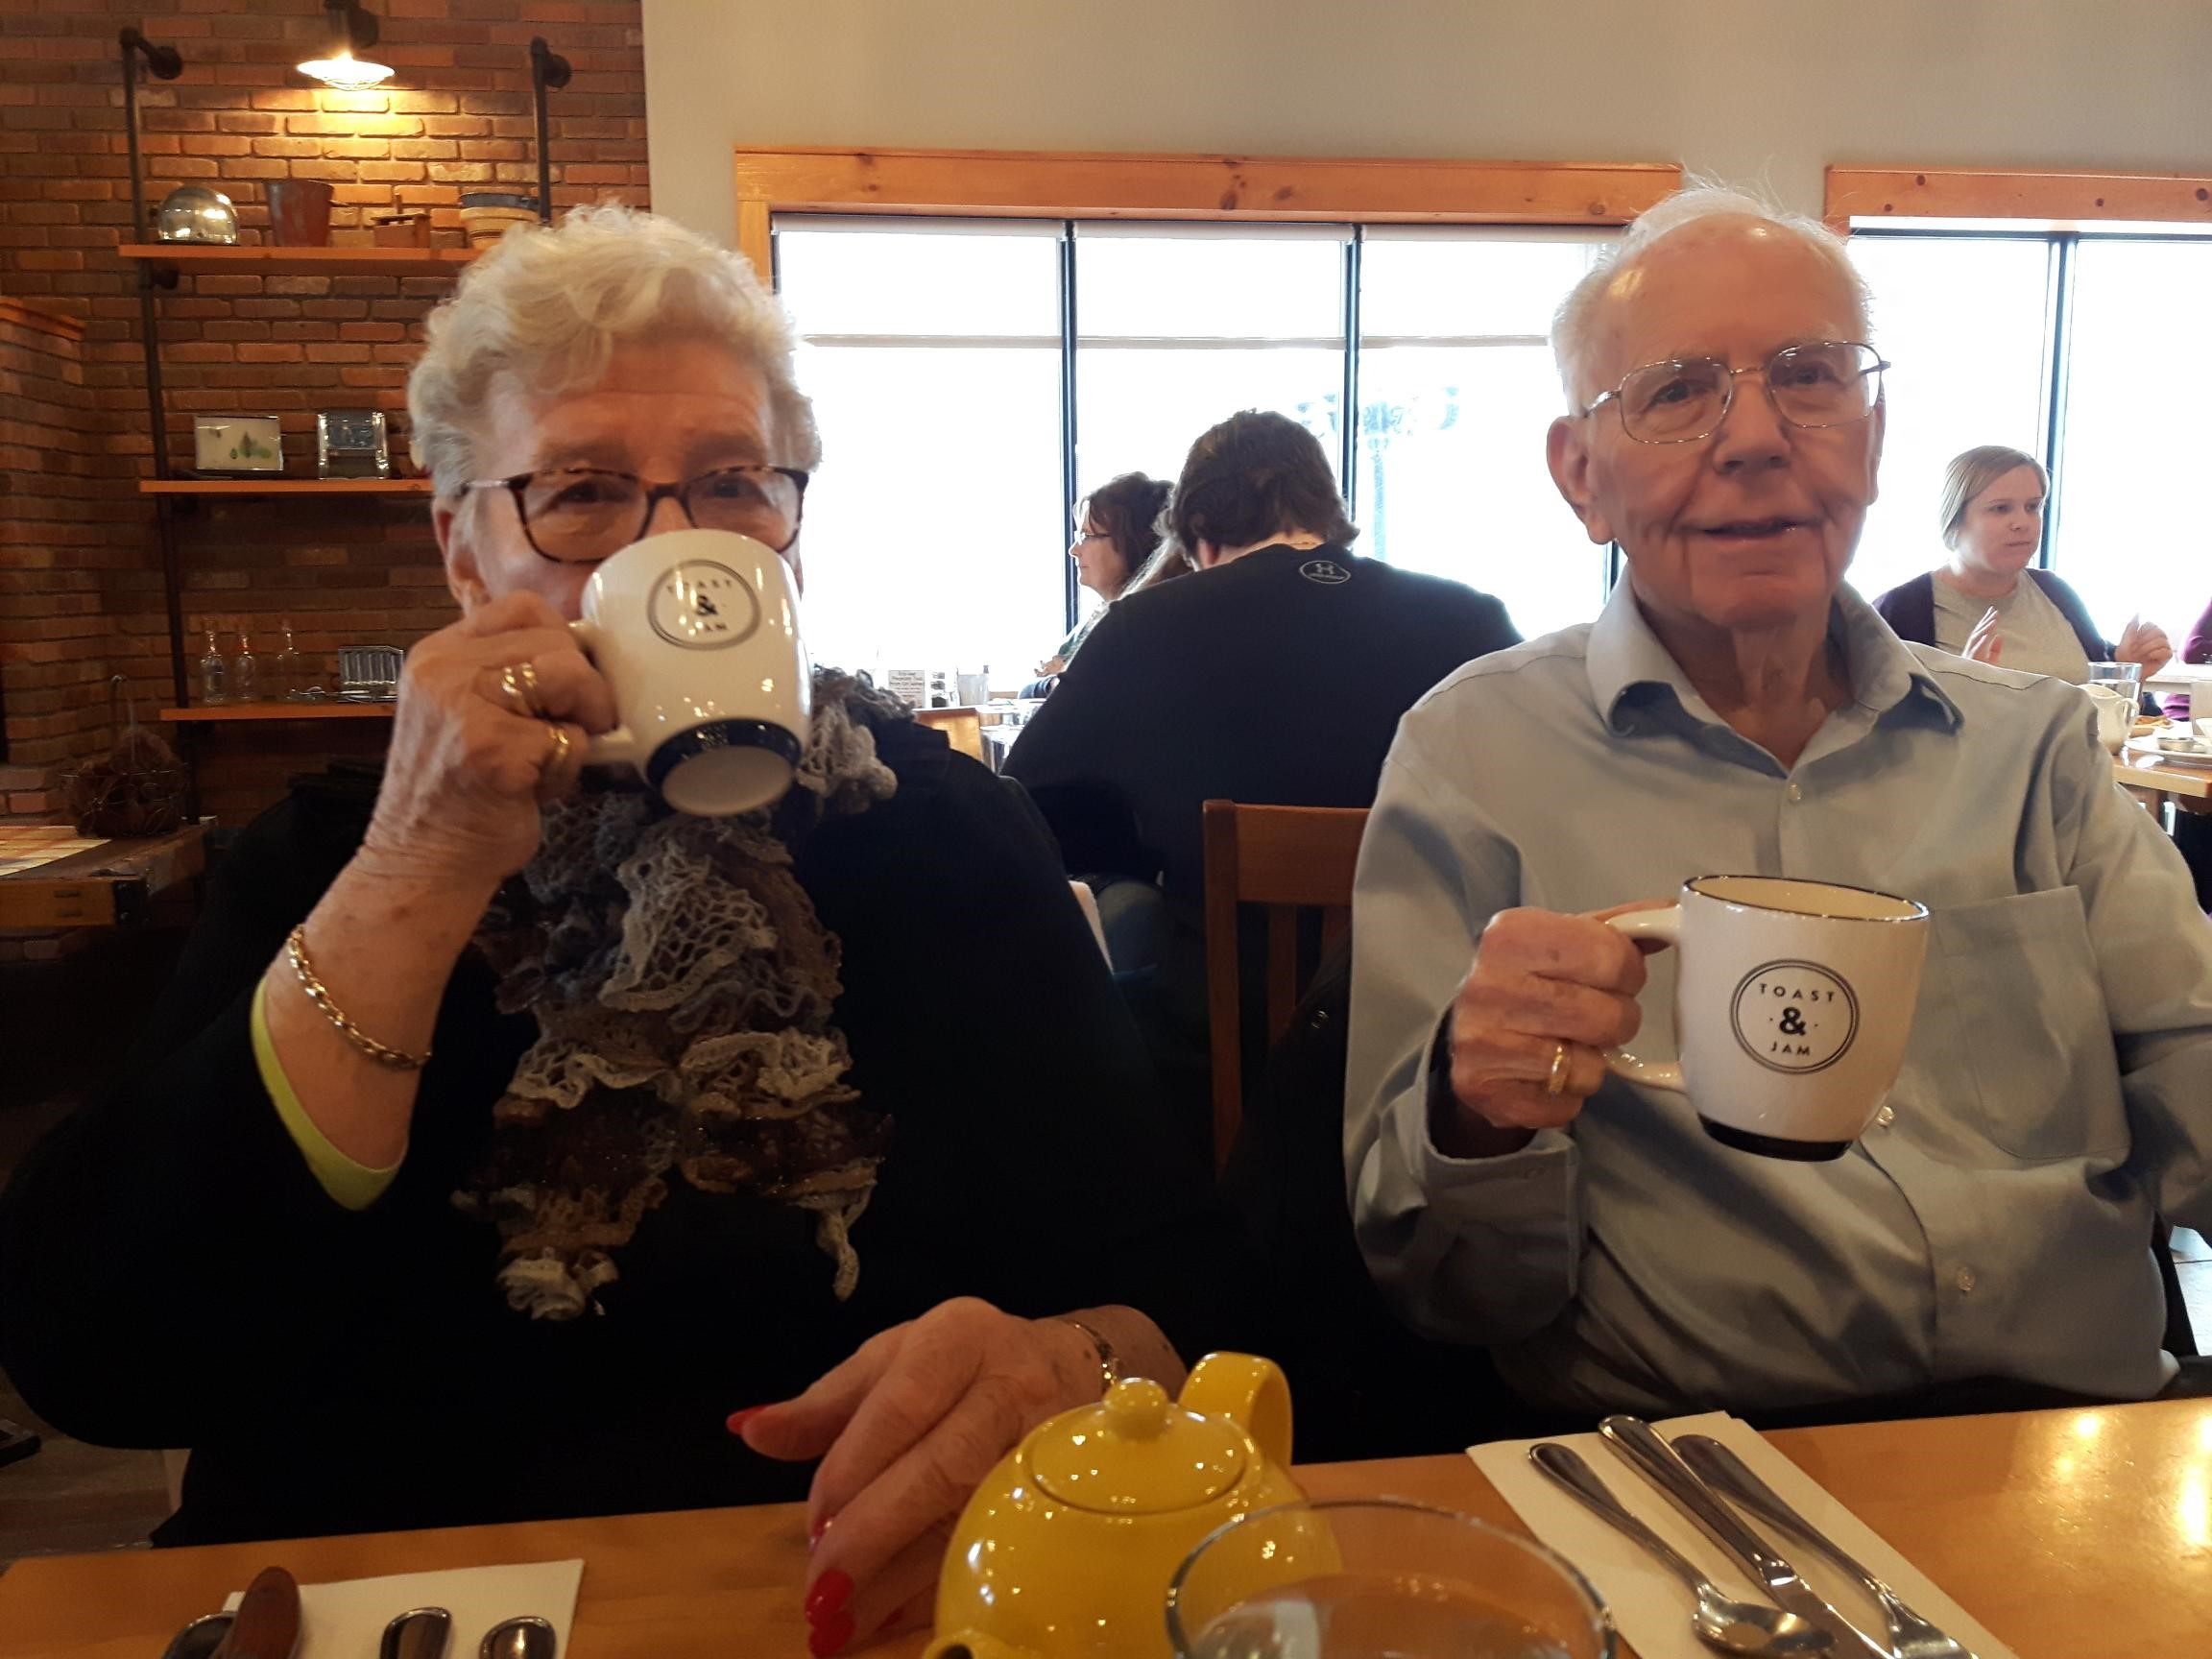 A lady and gentleman sipping tea at the restaurant Toast and Jam.